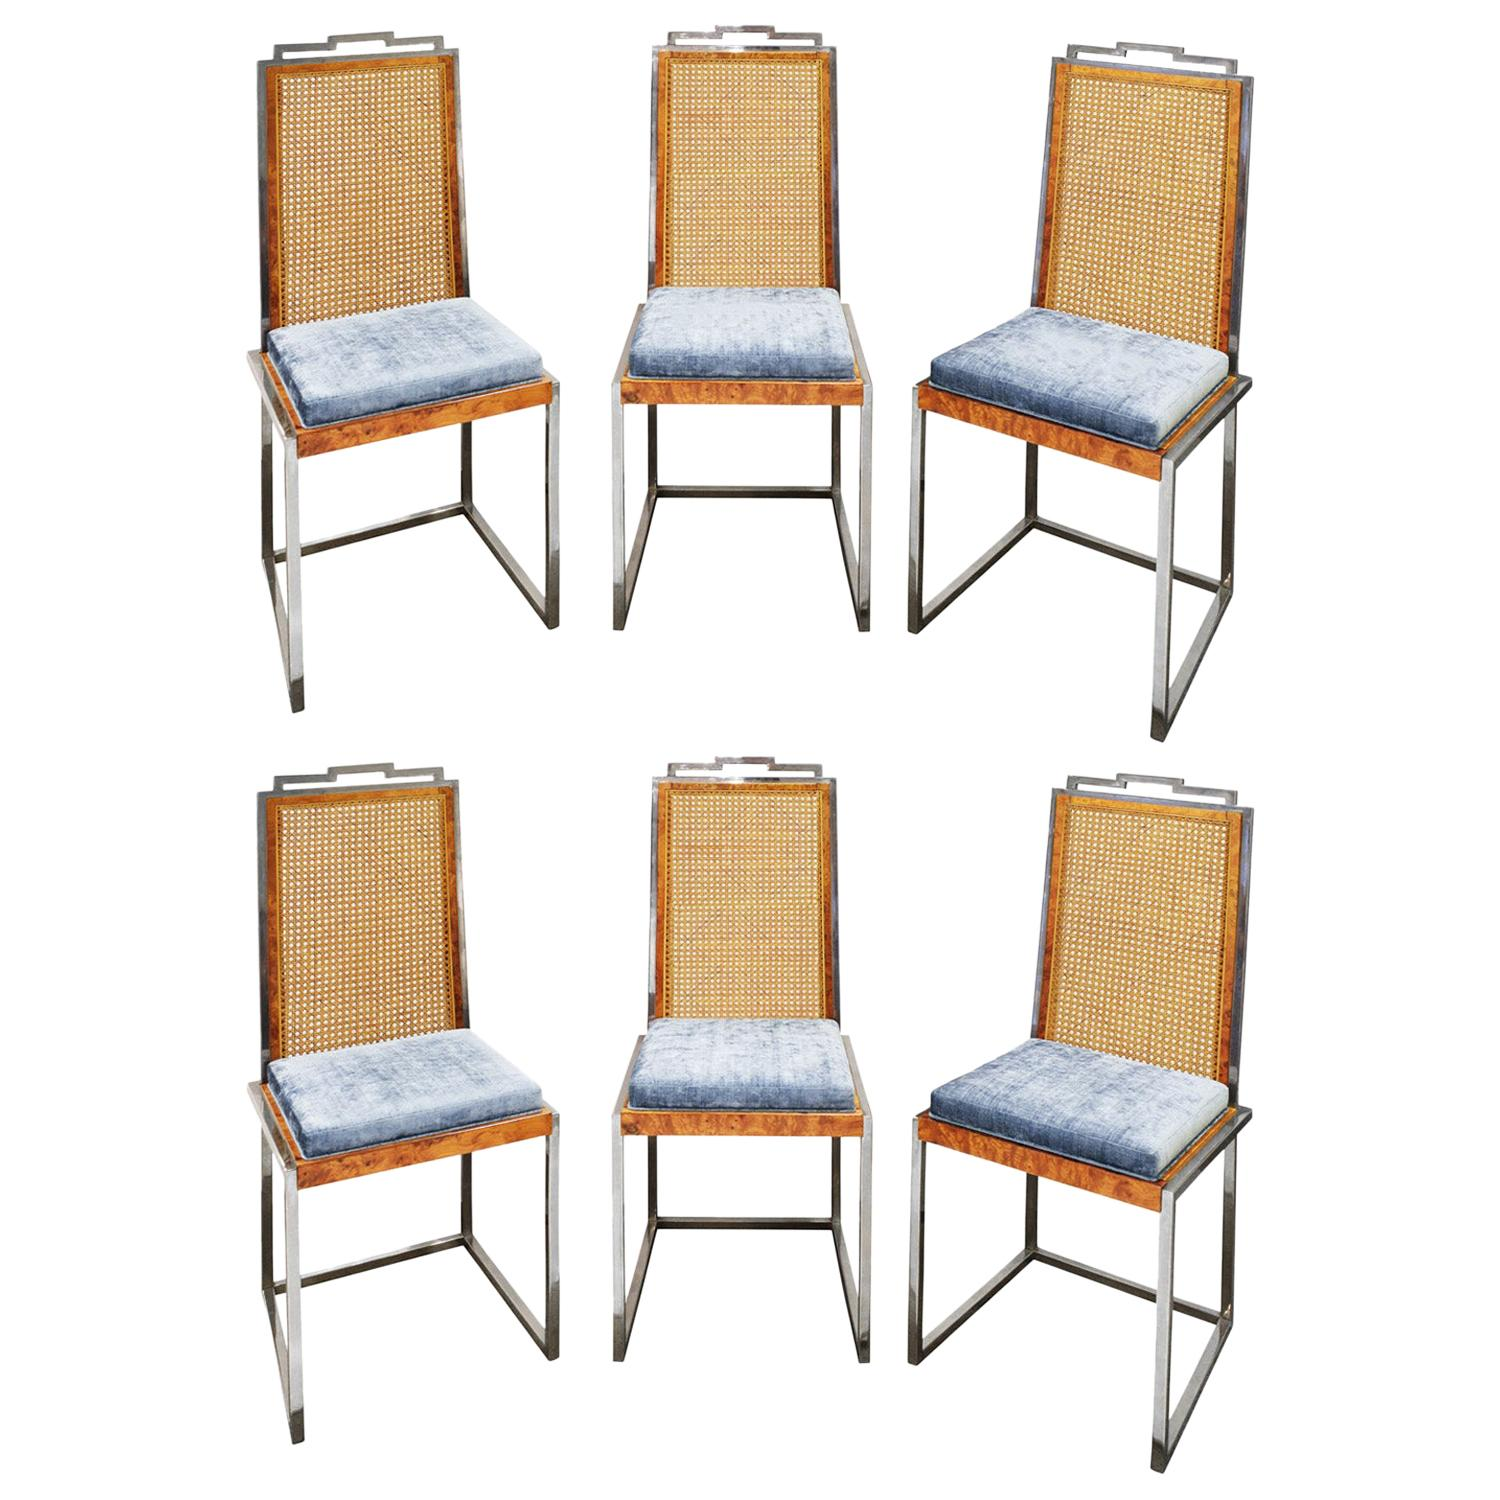 Willy Rizzo Set of 6 Dining Chairs in Chrome and Burl Wood, 1970s